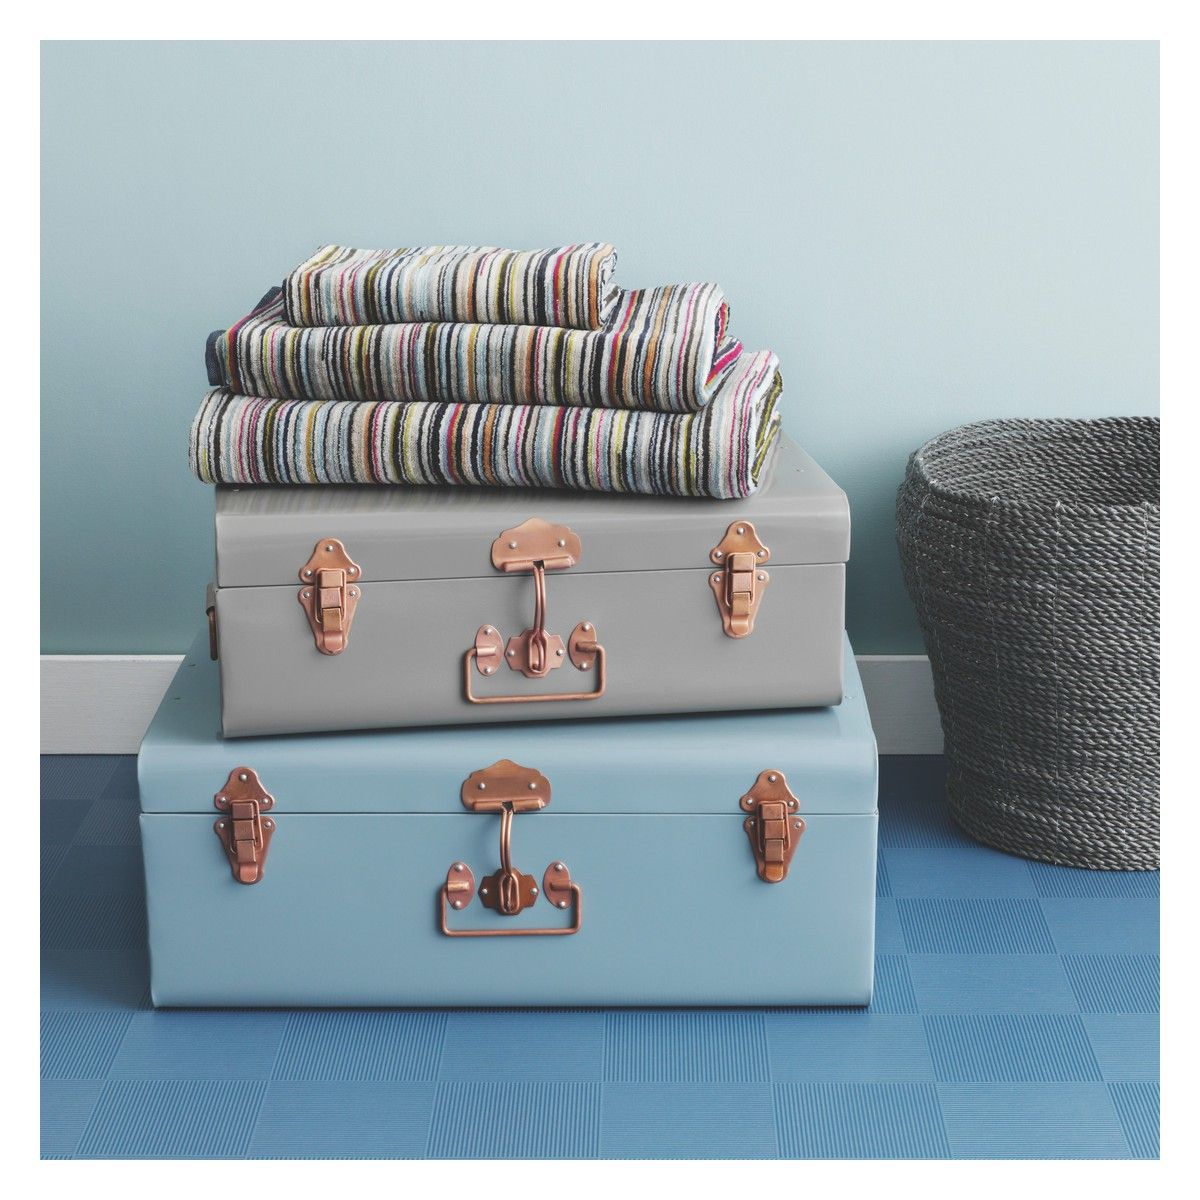 High Quality See My Selection Of Metal Storage Trunks And Vintage Style Storage Cases In  Pretty Pastel Colours, White And Black Which Are Very Useful To Store  Papers, ...